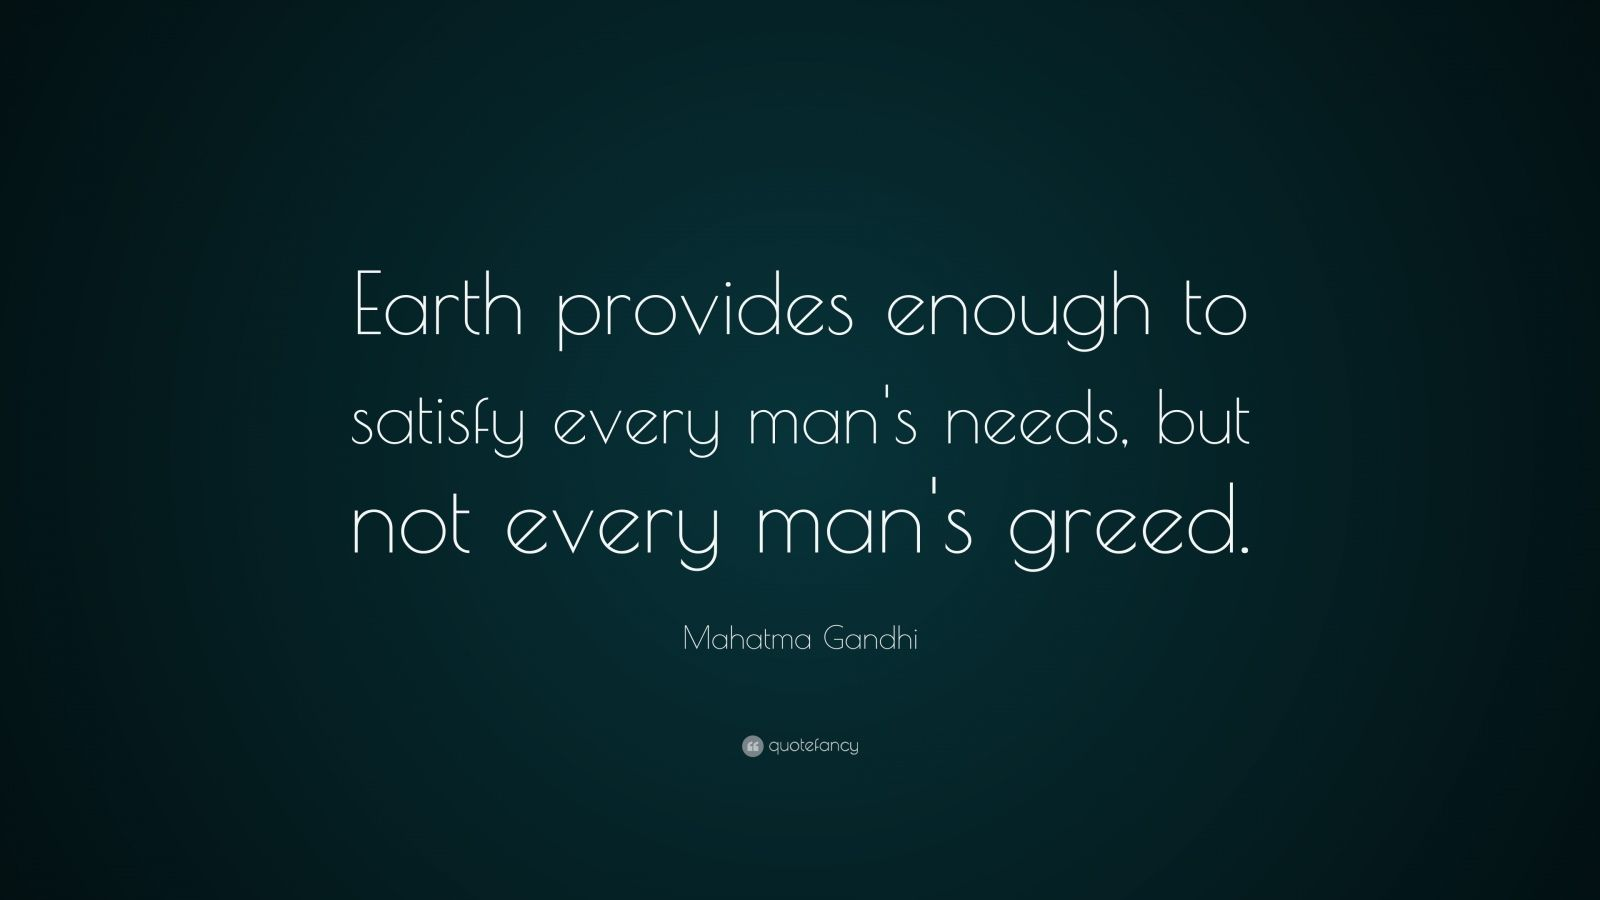 """ghandi earth provides enough for man """"earth provides enough to satisfy every man's needs, but not every man's greed"""" - gandhi."""